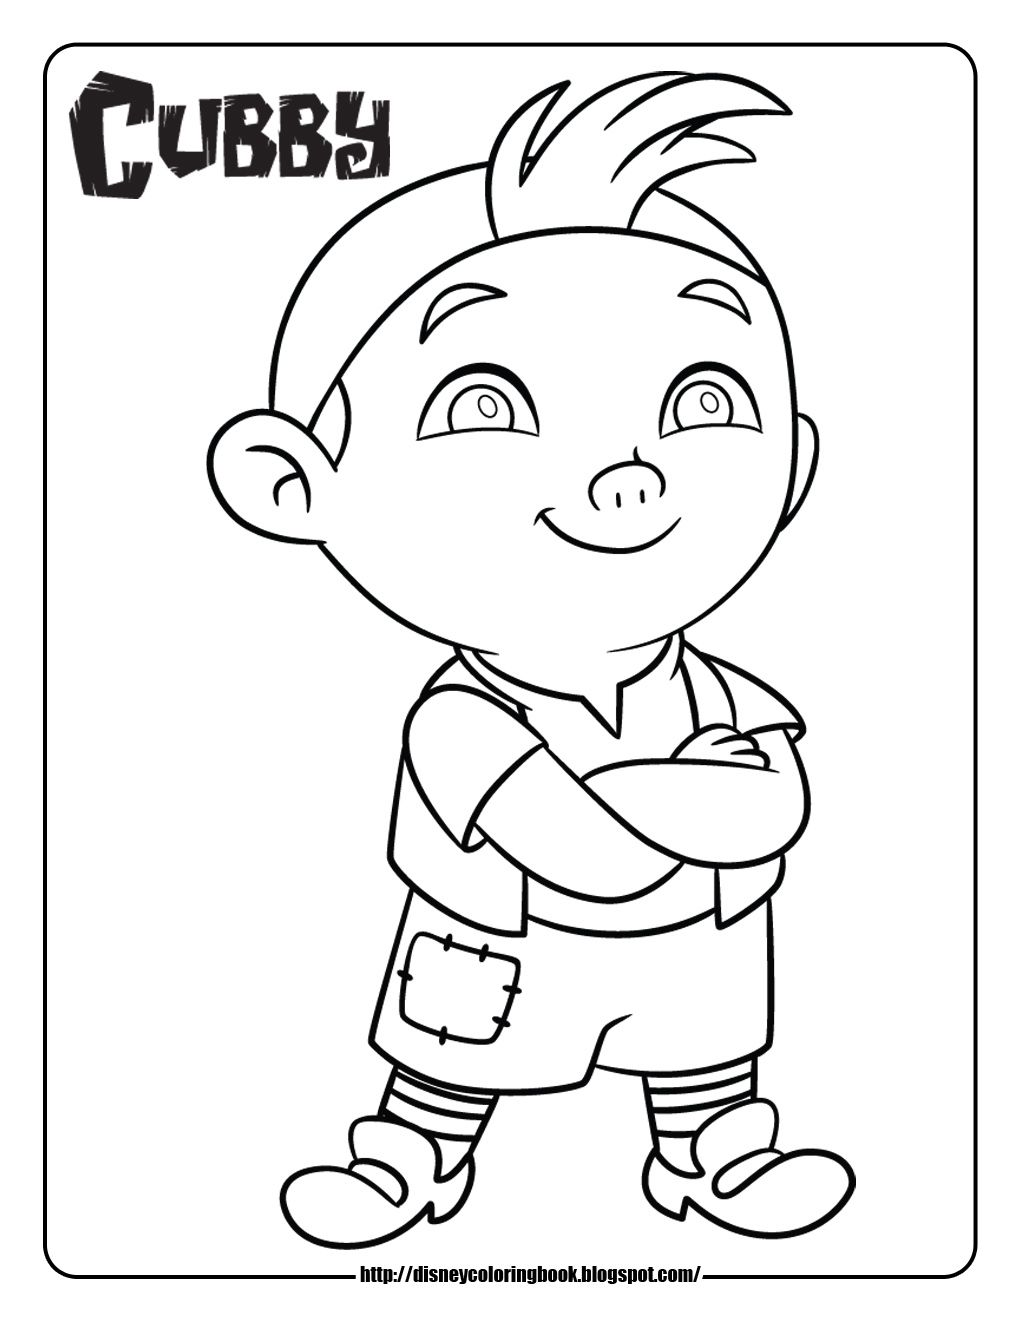 jake and the never land pirates coloring pages coloring sheets cubby ...